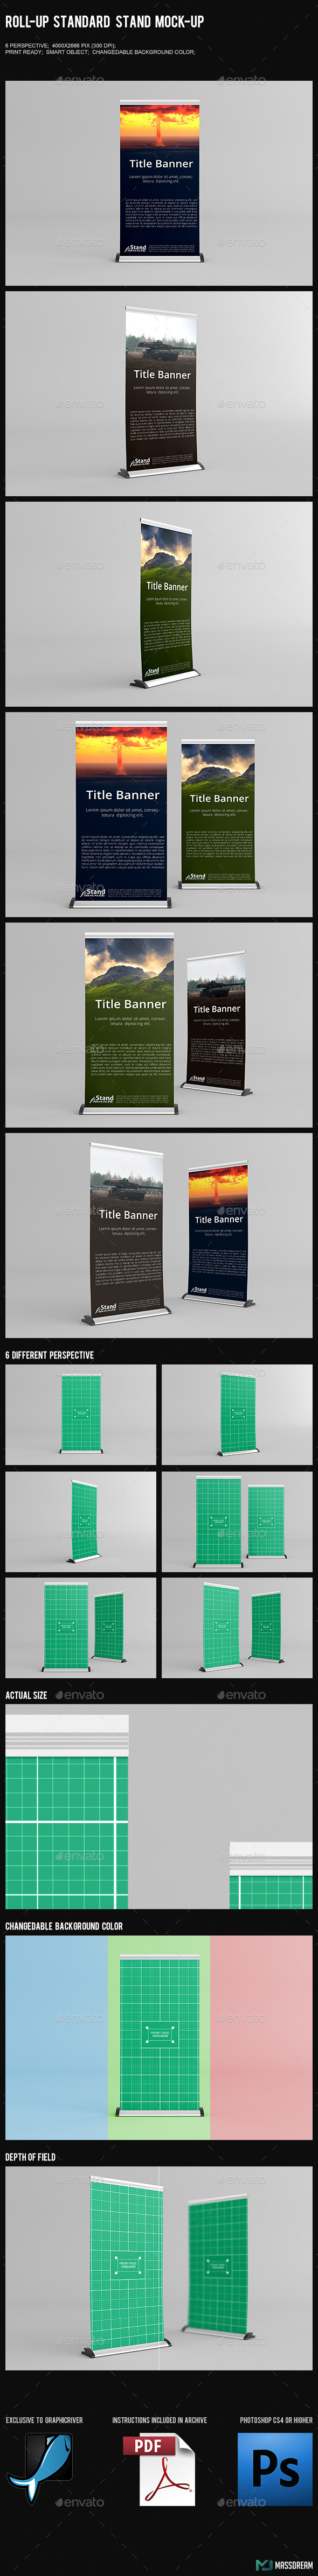 GraphicRiver Roll-Up Standard Stand Mock-Up 10258728